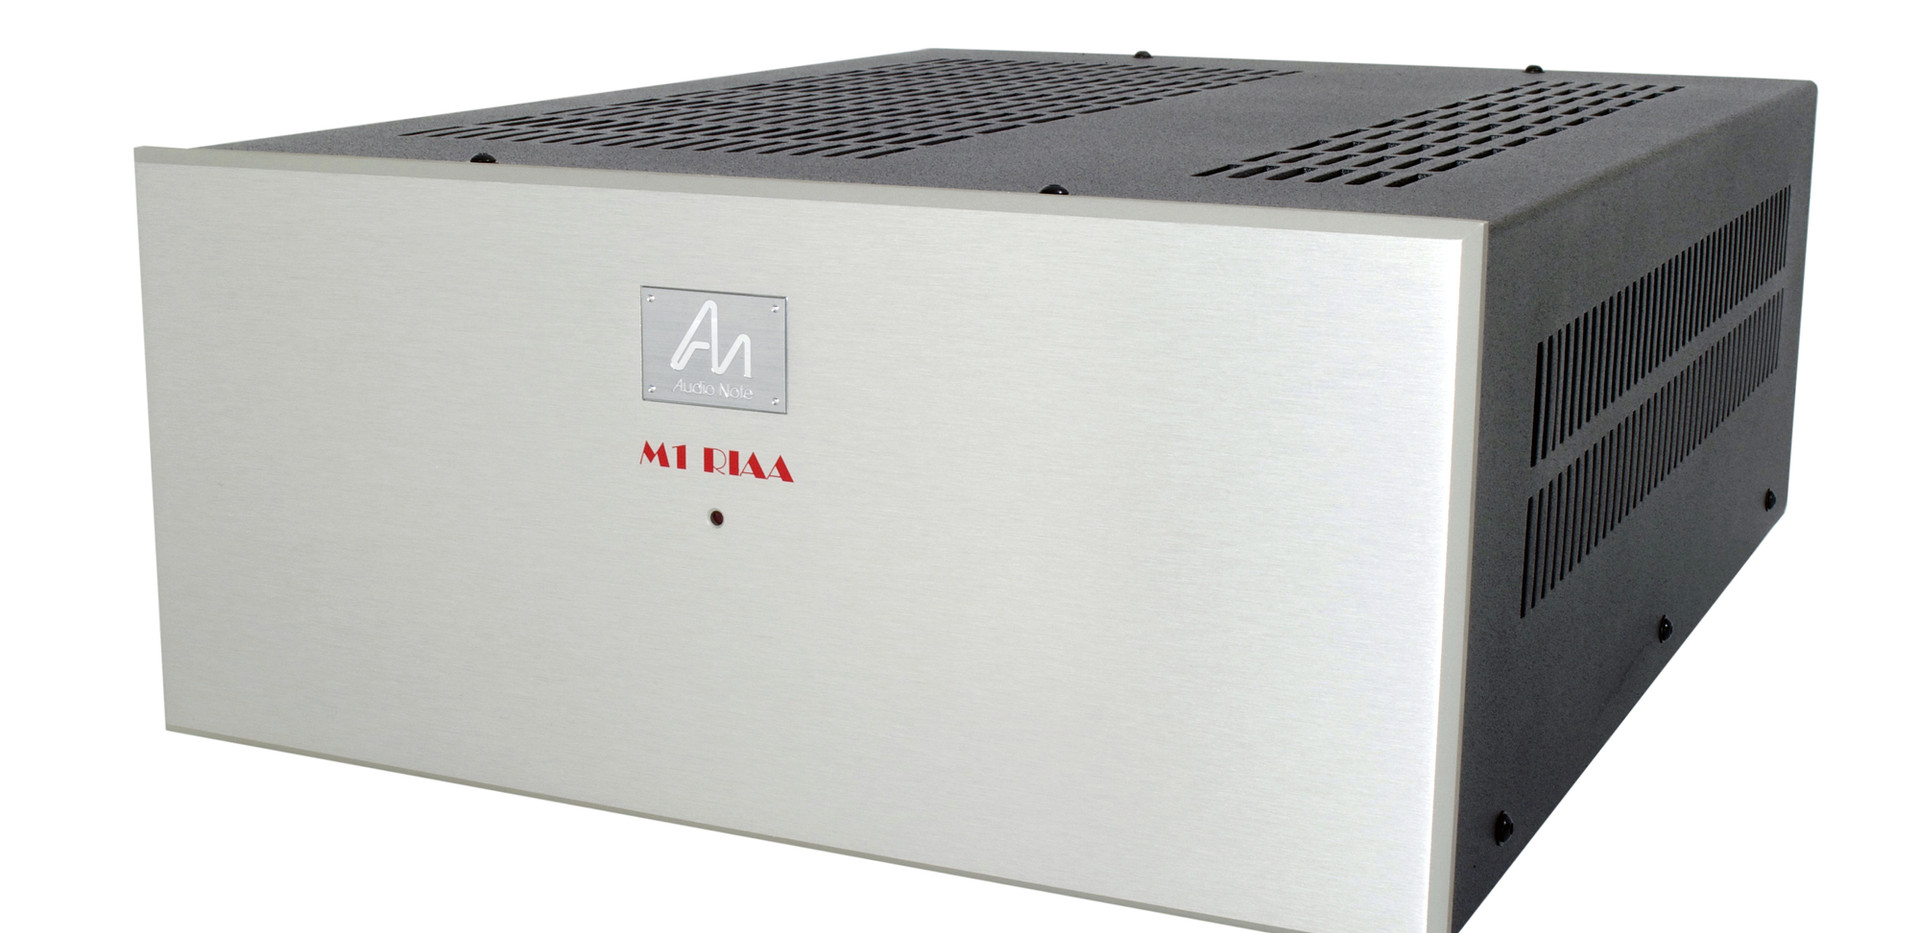 M1RIAA front side top on.jpg